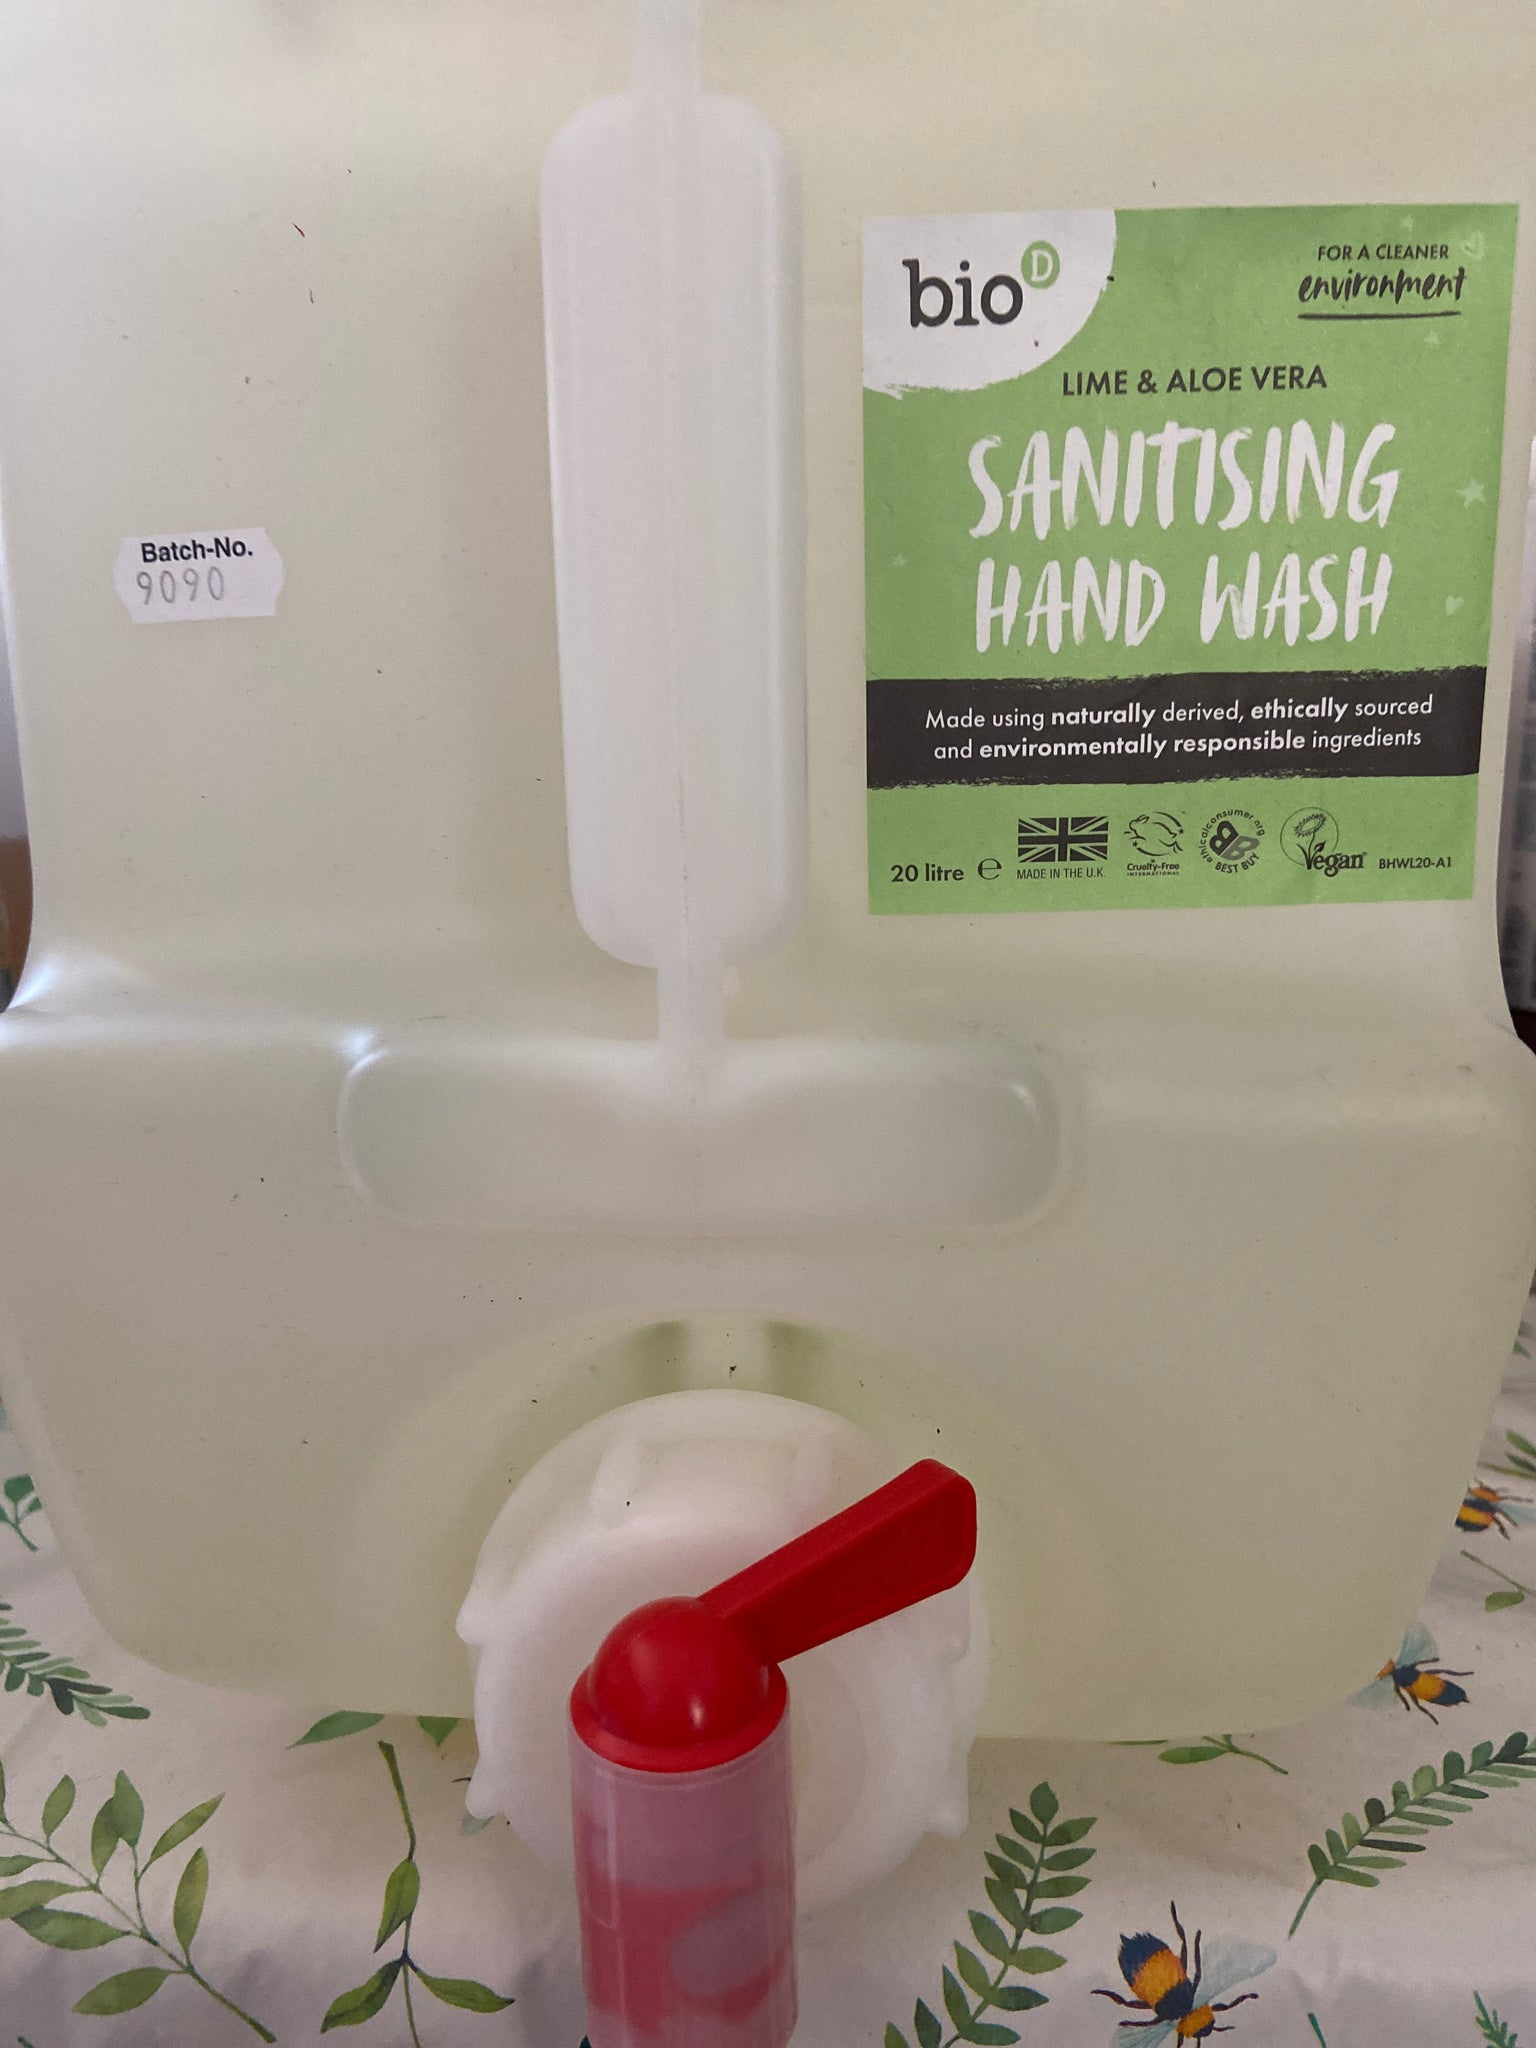 Lime and Aloe Vera Sanitising Handwash